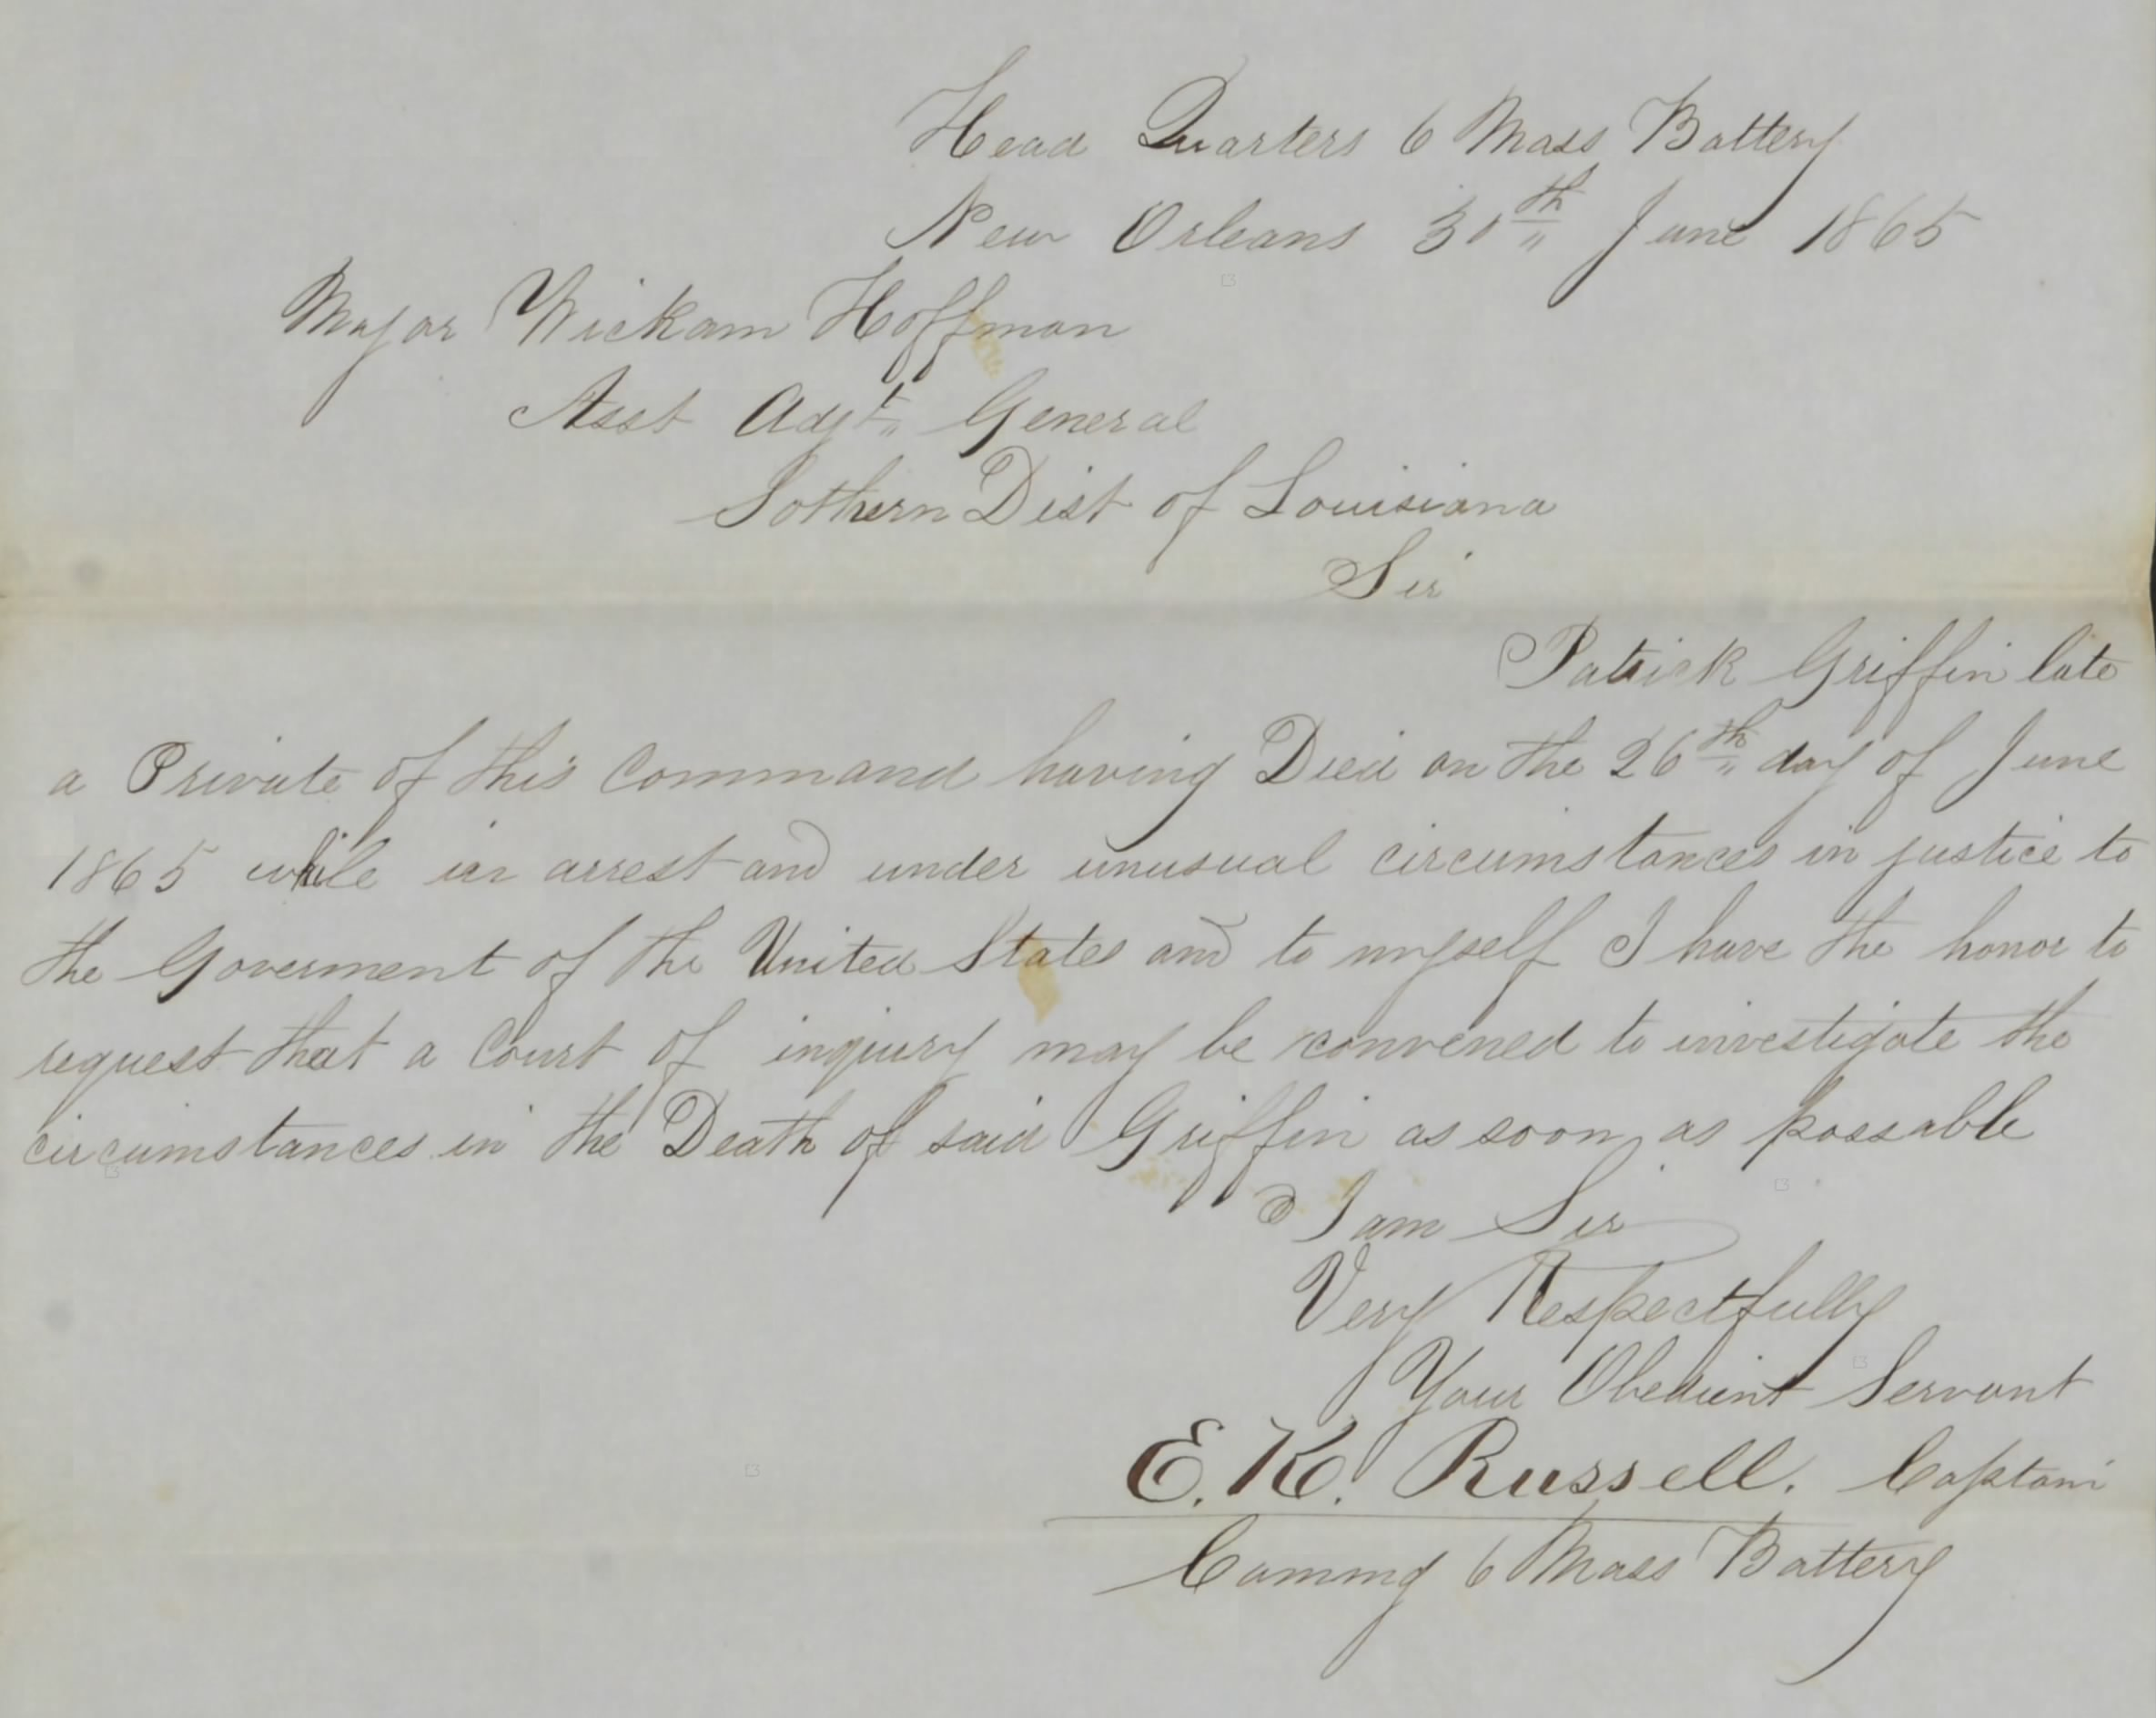 Written appeal of Patrick's Captain for an inquiry into Patrick's death (Fold3/NARA)